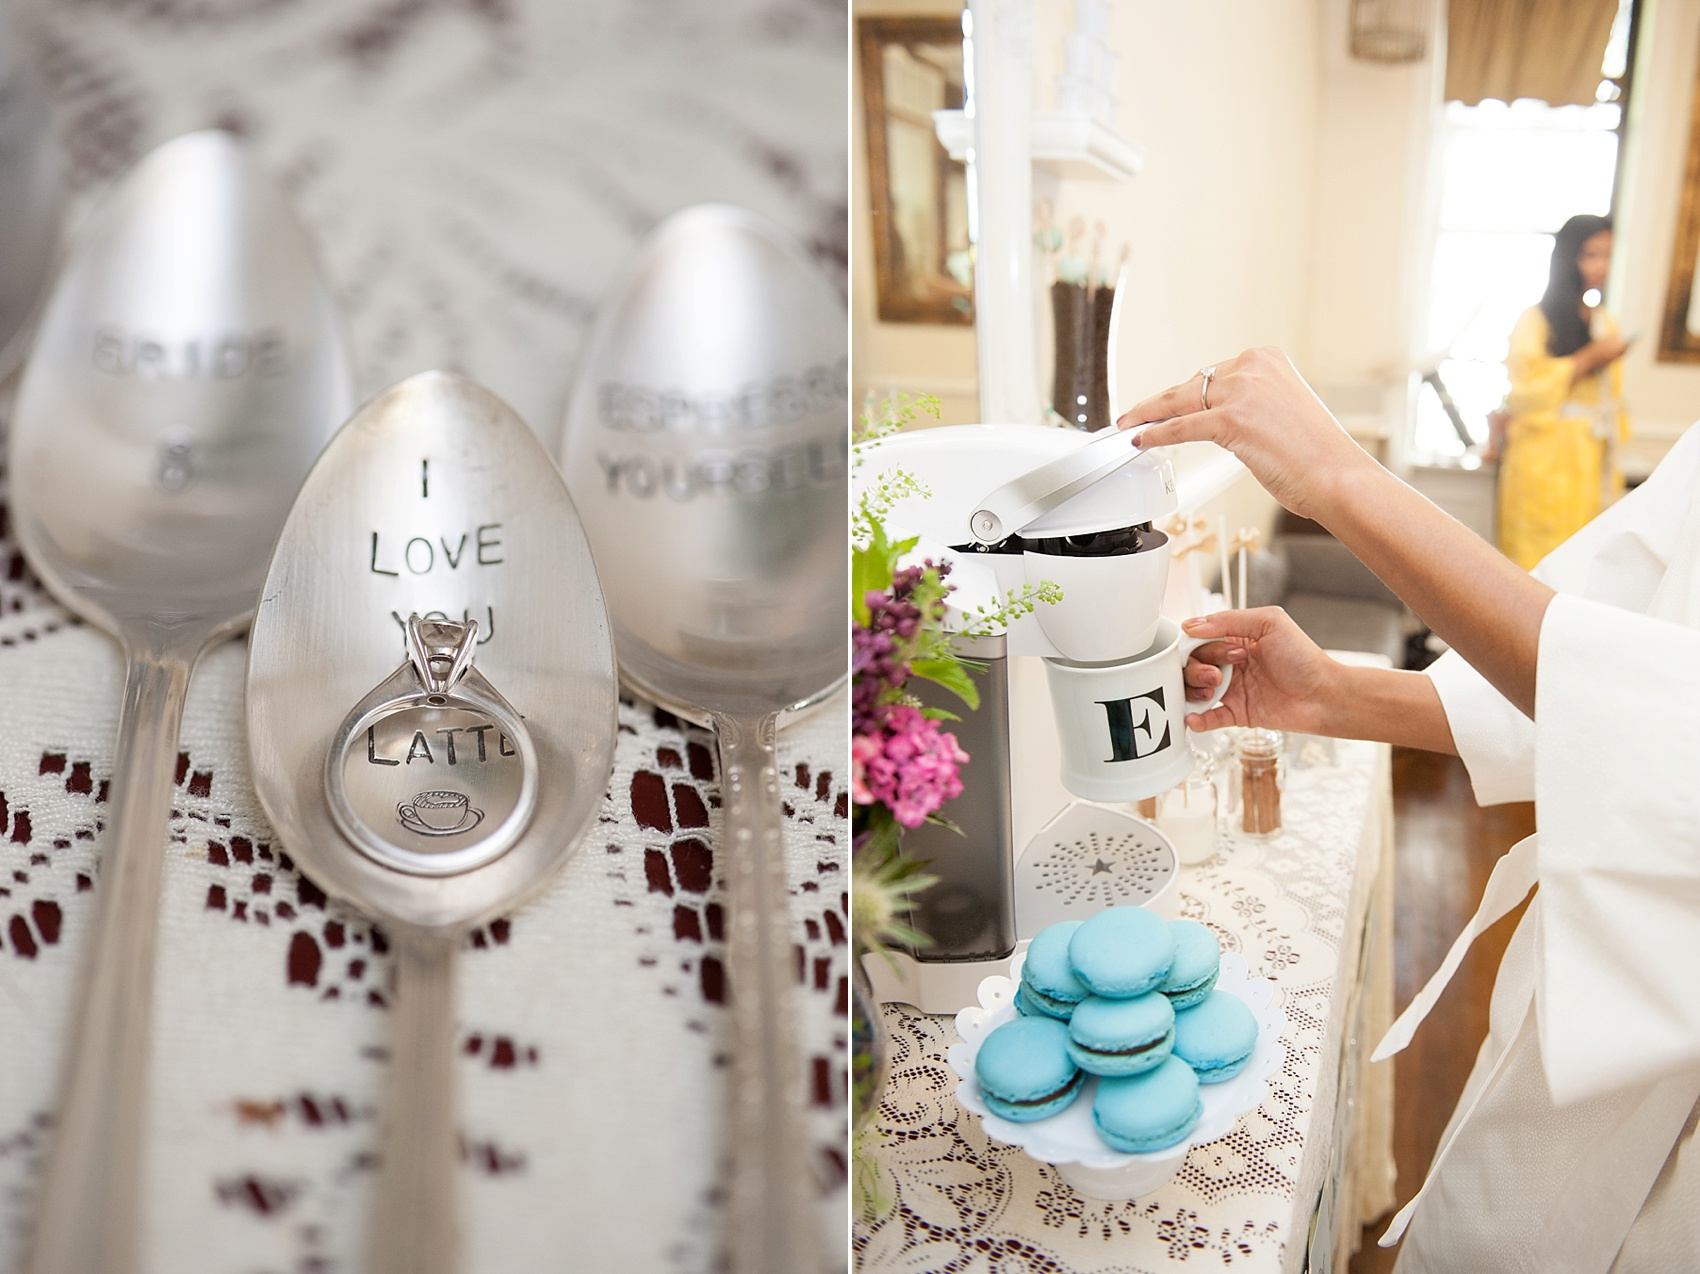 Bridesmaids Getting Ready Ideas By Mikkel Paige For Love Inc Mag And Keurig Coffee